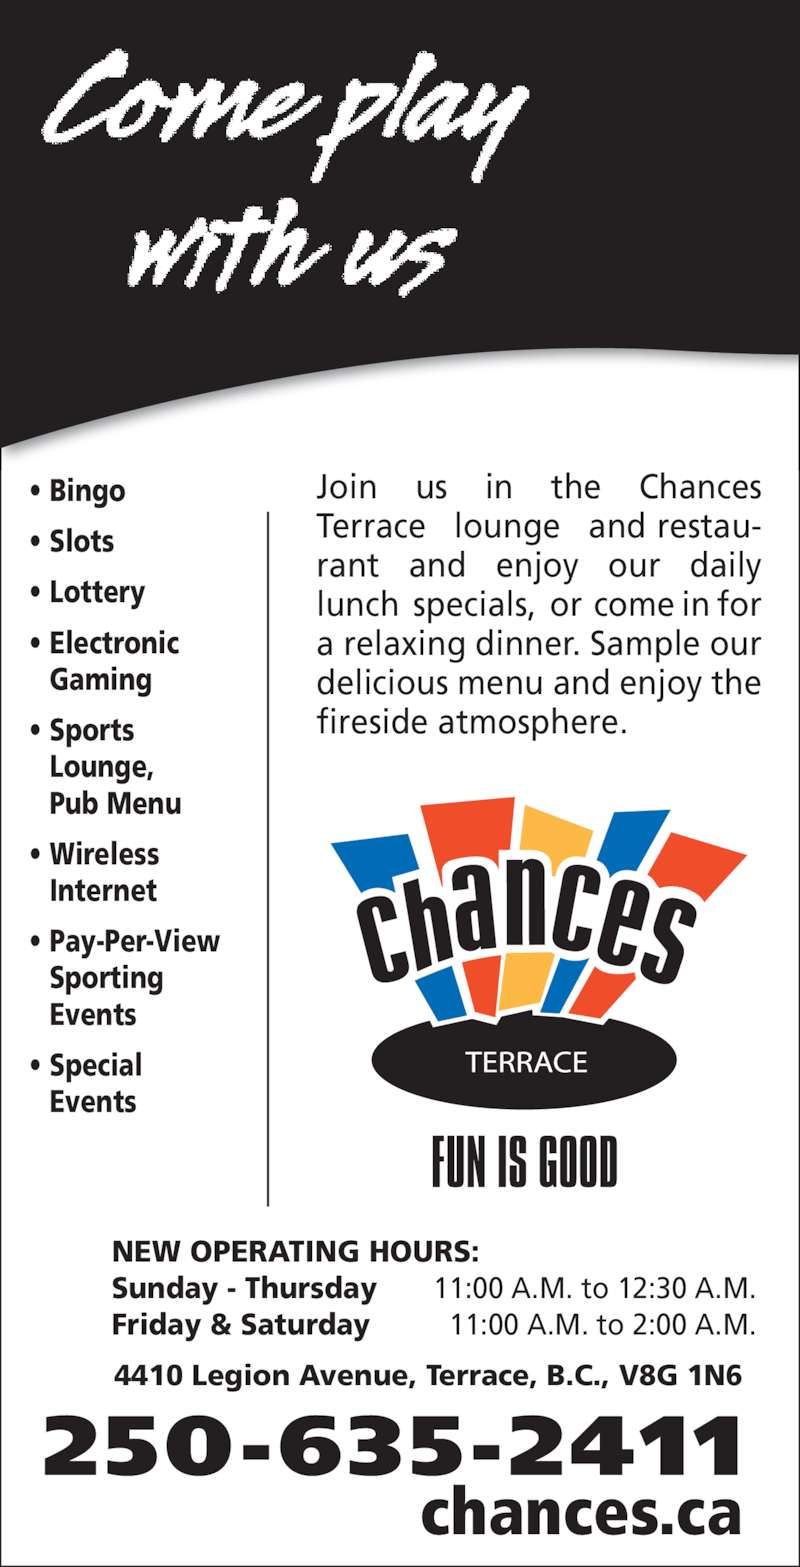 Chances Terrace (250-635-2411) - Display Ad - NEW OPERATING HOURS: Sunday - Thursday 11:00 A.M. to 12:30 A.M. Friday & Saturday 11:00 A.M. to 2:00 A.M. 4410 Legion Avenue, Terrace, B.C., V8G 1N6 250-635-2411 chances.ca • Bingo • Slots • Lottery • Electronic Gaming • Sports Lounge, Pub Menu • Wireless Internet • Pay-Per-View Sporting Events • Special Events Join us in the Chances  Terrace lounge and restau- rant and enjoy our daily  lunch specials, or come in for  a relaxing dinner. Sample our  delicious menu and enjoy the  fireside atmosphere.